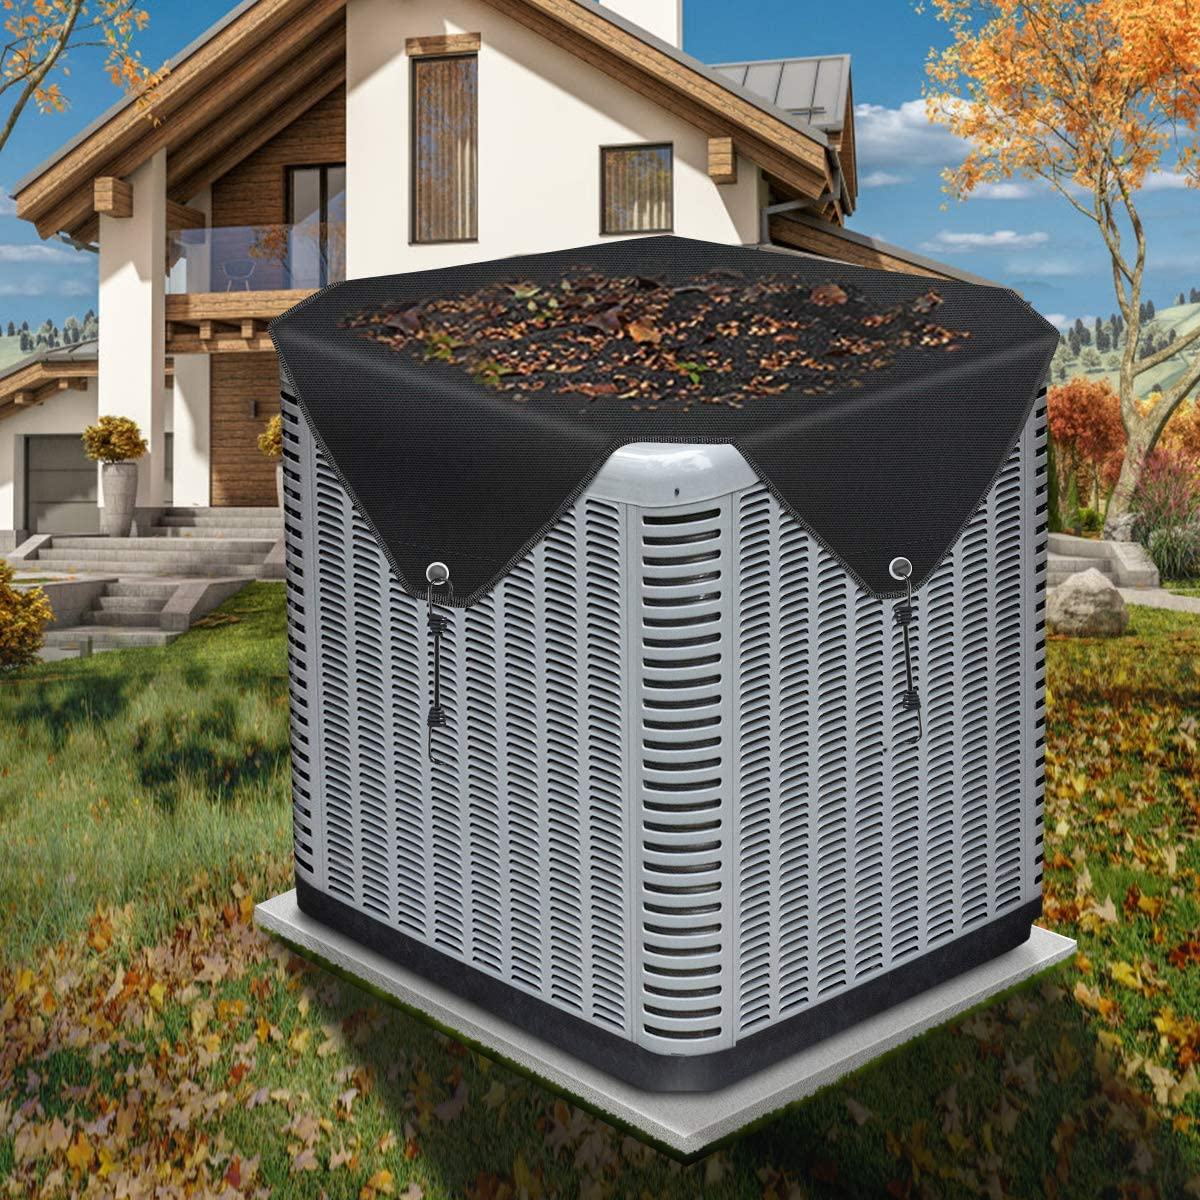 gulrear Air Conditioner Covers for Outside Units Top Square Ac Covers Outdoors Seal Black Central Air Conditioner Cover Universal Heavy Duty AC Defender with Bungee Hooks